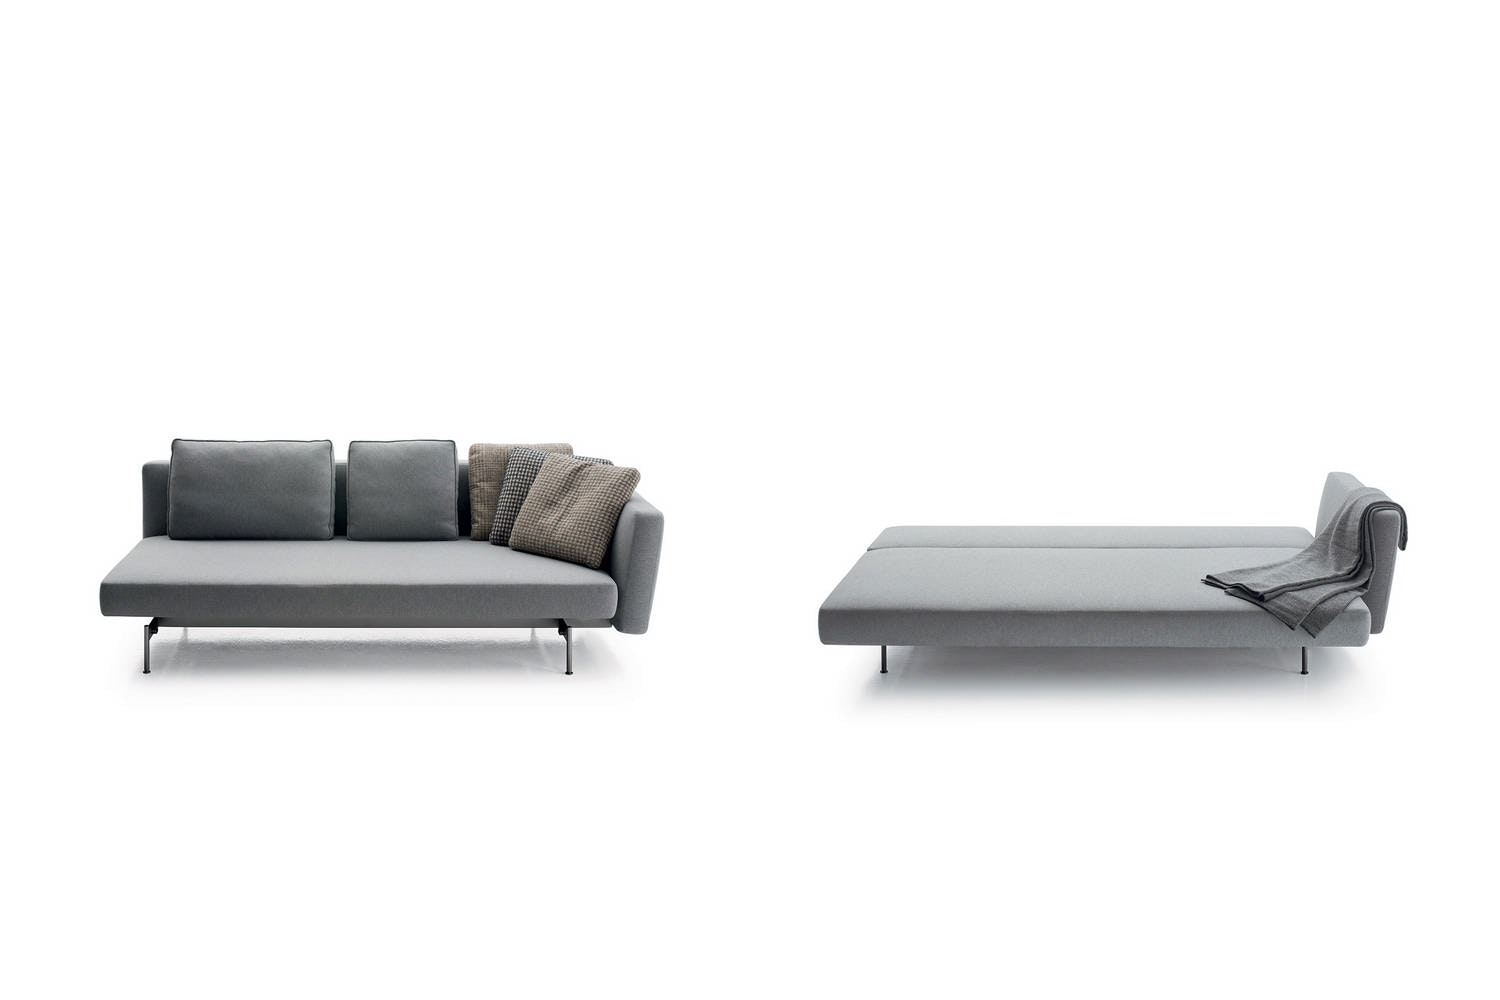 SAKe Sofa Bed by Piero Lissoni for B&B Italia